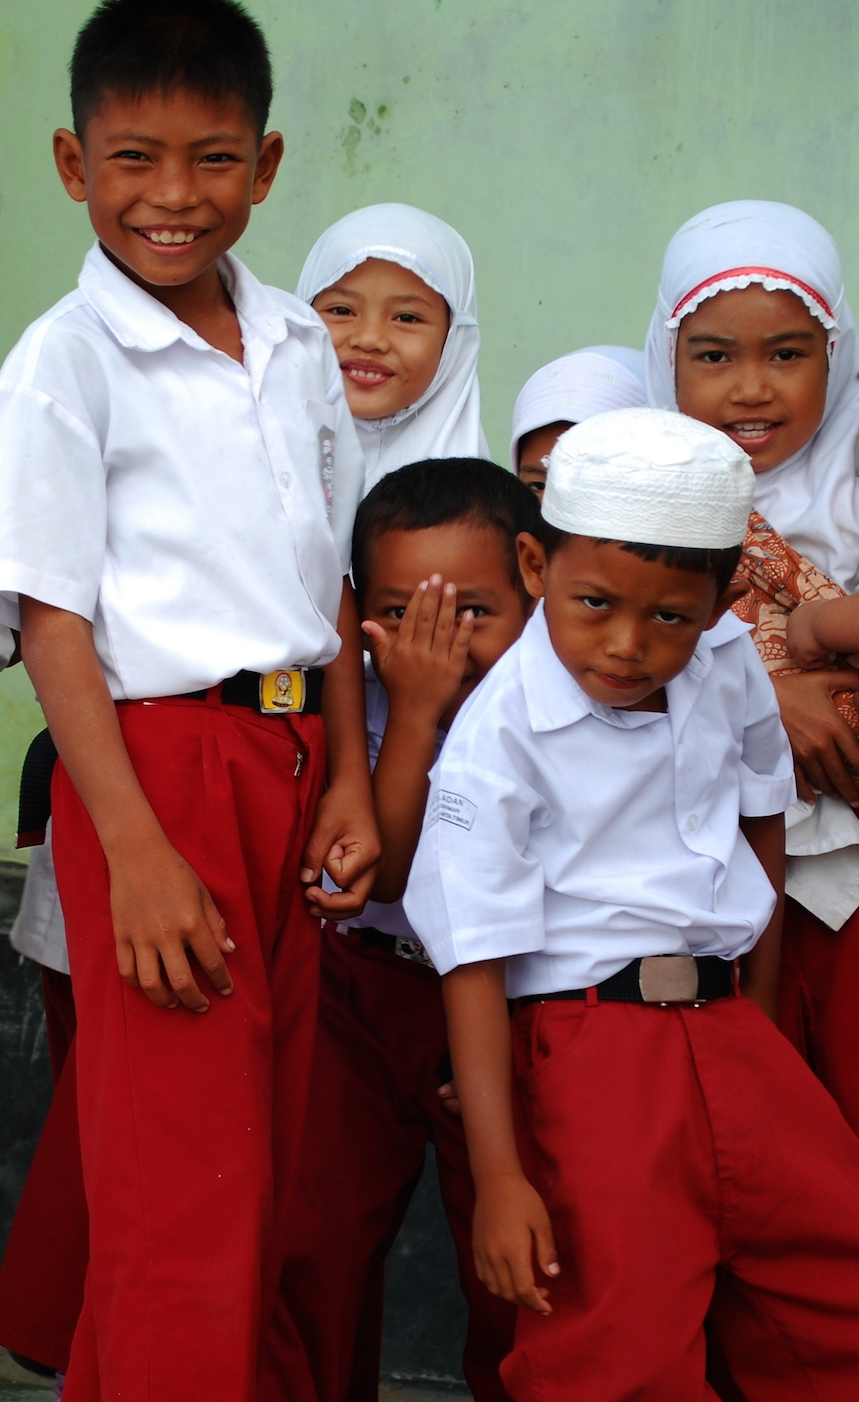 - 2015 May - Indonesia and Malaysia agree to rescue and provide temporary shelter to Rohingya migrants fleeing Myanmar by boat, after weeks of mounting humanitarian crisis.2016 January - Islamic State media claim responsibility for coordinated attacks near a popular shopping centre in central Jakarta.2016 October - Parliament approves harsher penalties including chemical castration, for child sex offenders.2016 November - Indonesia agrees to help investigate the disappearance of three Dutch warships that were sunk in sunk in the Second World War.2016 December - The Netherlands agrees to launch an inquiry into the conclusion of its colonial rule in Indonesia in the 1940s. Dutch troops are suspected of having killed tens of thousands of people during the war of independence.Deadly earthquake strikes off Indonesia's Aceh province.2017 May - Jakarta's Christian mayor Basuki Tjahaja Purnama is jailed for two years for blasphemy.Islamic State outlets claim a suicide bomb attack in Jakarta which kills three policemen and injures twelve others.2017 June - The Islamic State Group has spread to almost every province of the country, according to military chief General Gatot Nurmantyo.2018 May - Spate of bombings in the second city of Surabaya, carried out by families of suicide bombers, including their children.2018 September - Major earthquake and tsunami kill more than 1,000 people on the island of Sulawesi, around the city of Palu.2018 October - New Boeing 737 Max 8 plane operated by Indonesia's Lion Air crashes into the Java Sea, killing all 189 people on board. A similar crash in Ethiopia the following March leads to the grounding of the 737 Max 8 around the world pending investigations.2019 April - Presidential and legislative elections held simultaneously for the first time. Over 192 million citizens register to vote for a president and legislators for 20,500 seats in the mammoth exercise.